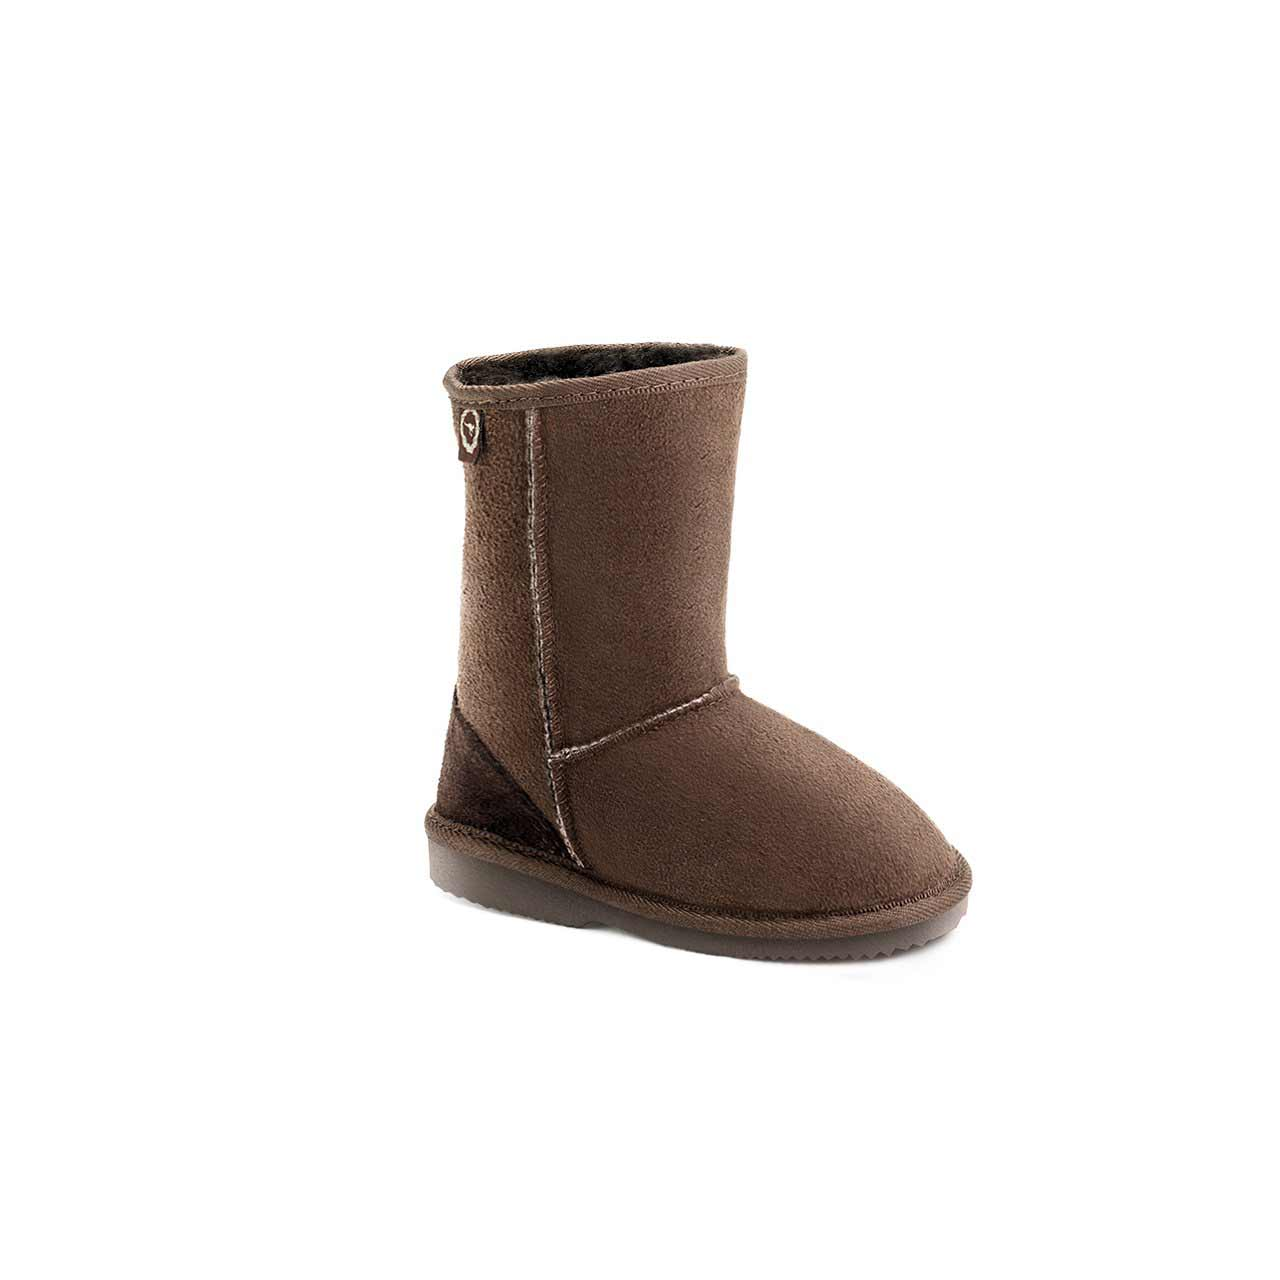 Children's Long Boots | The One and Only | Ugg Australia®